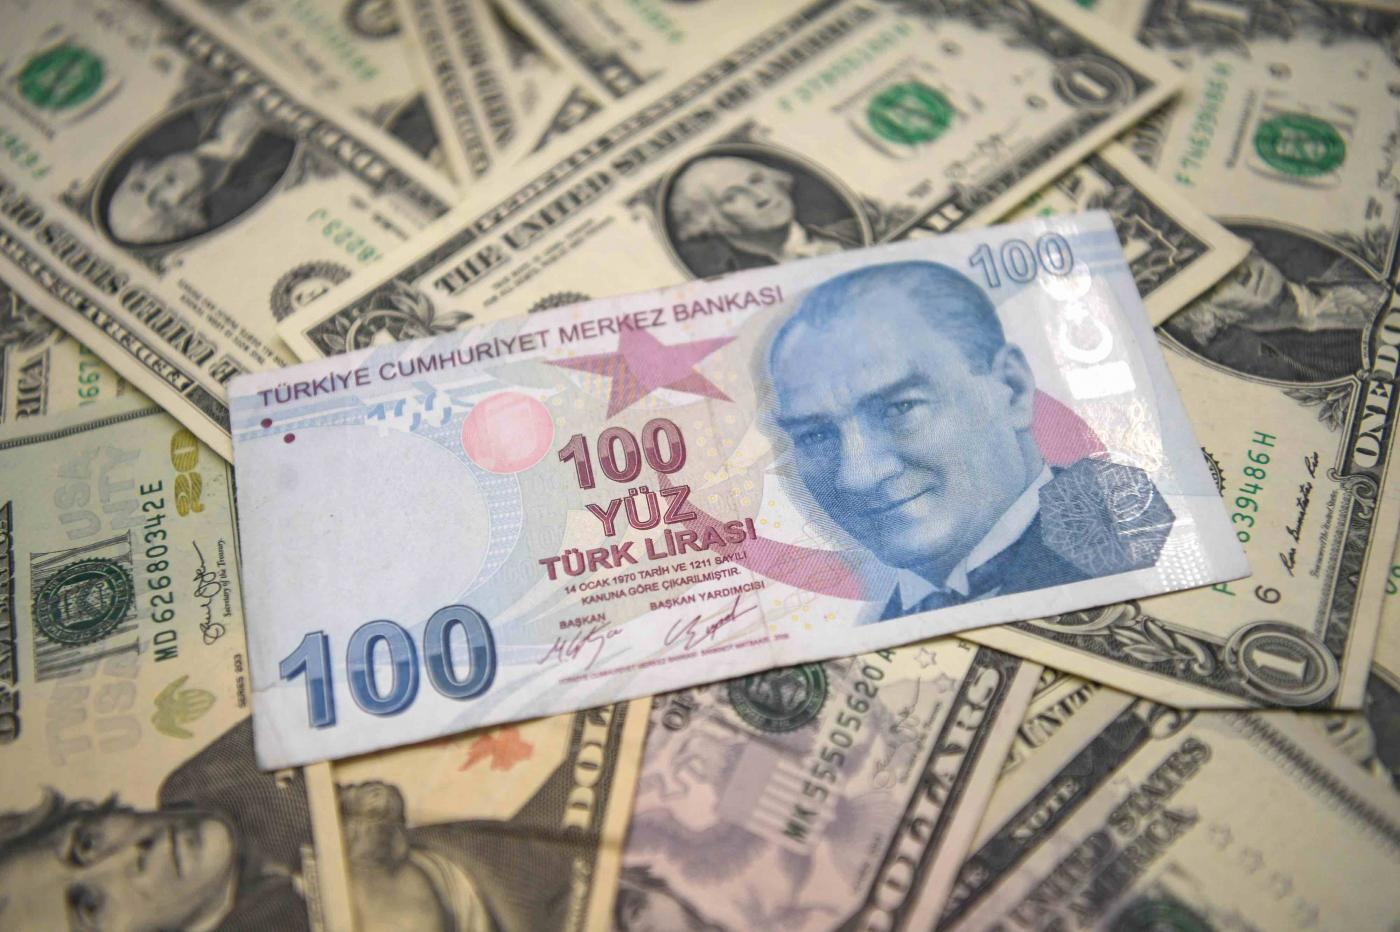 Turkey's Erdogan seeks to alleviate lira worries